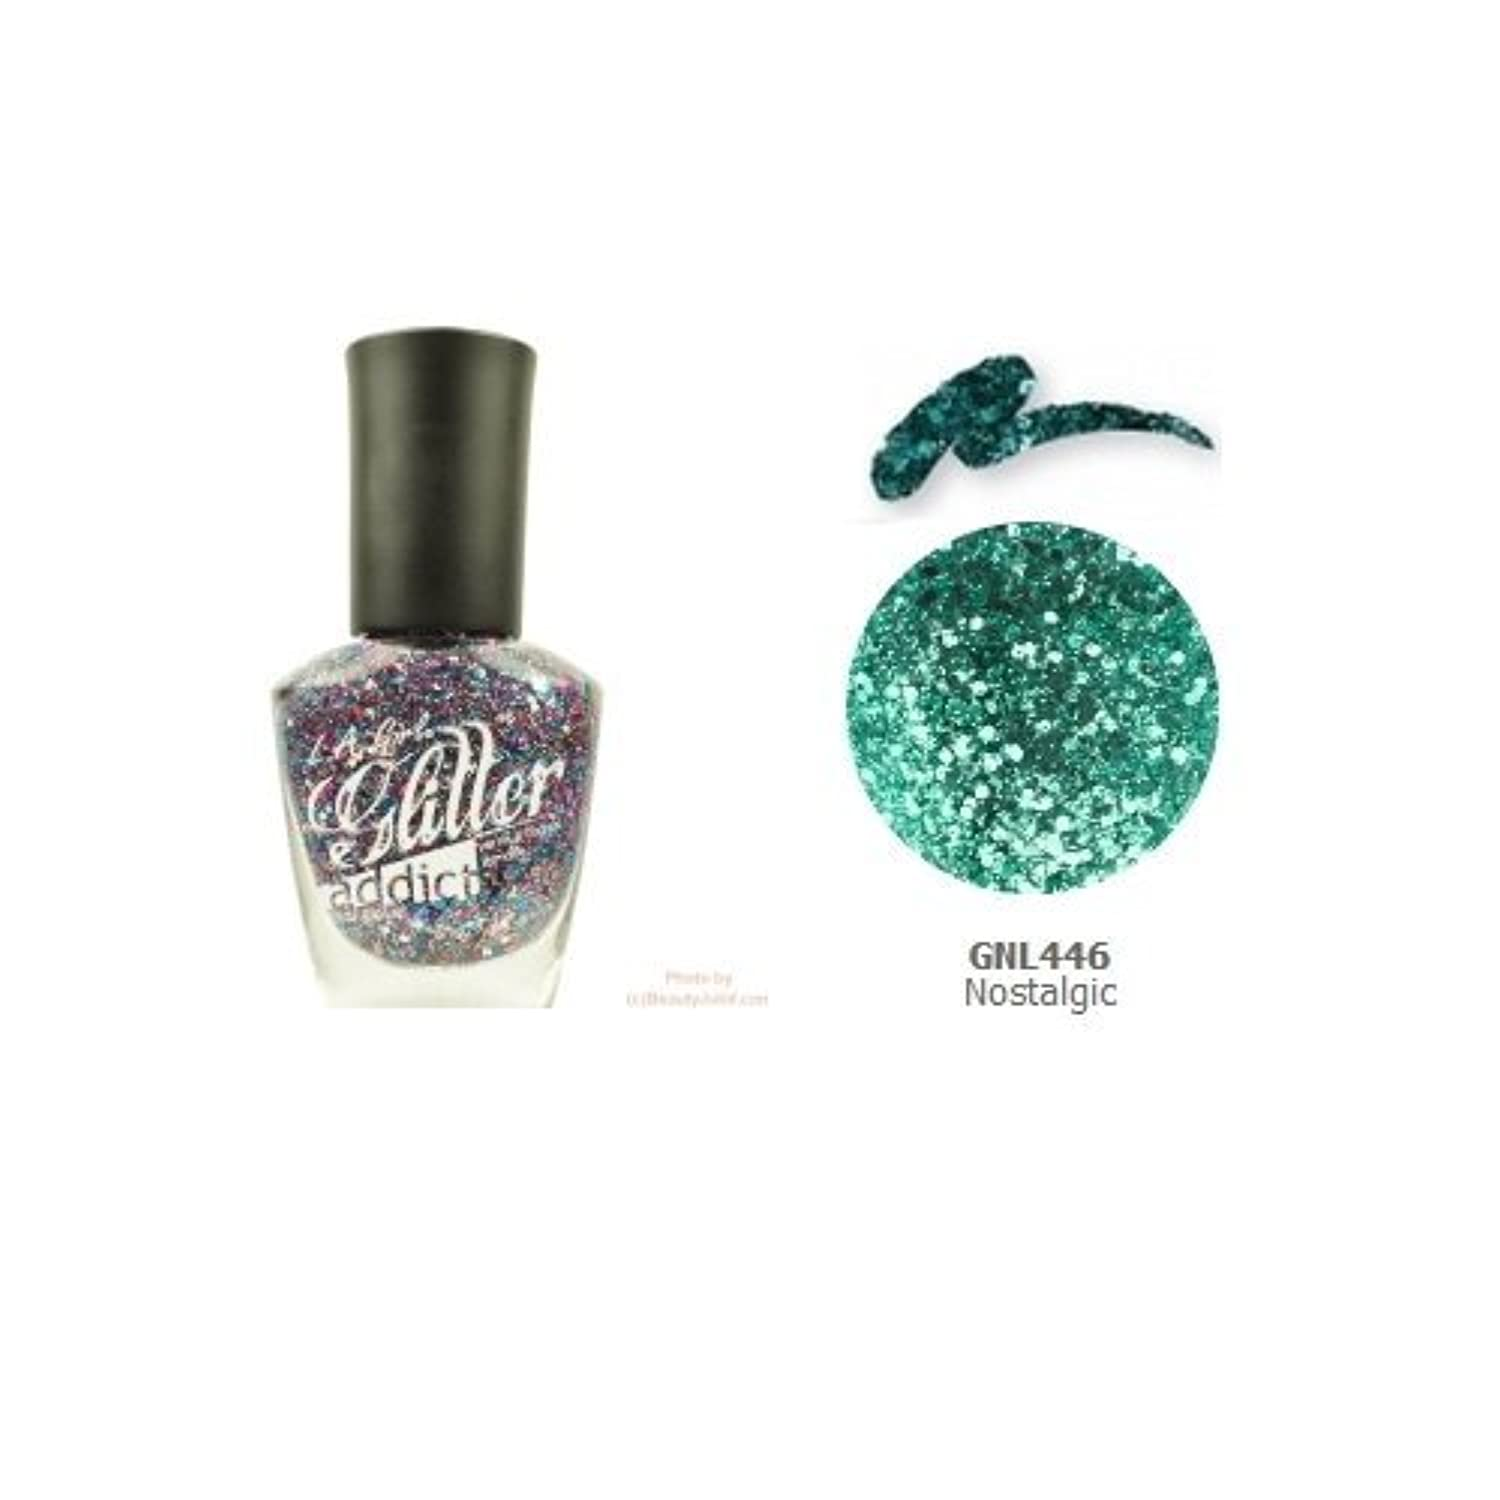 LA GIRL Glitter Addict Polish - Nostalgic (並行輸入品)